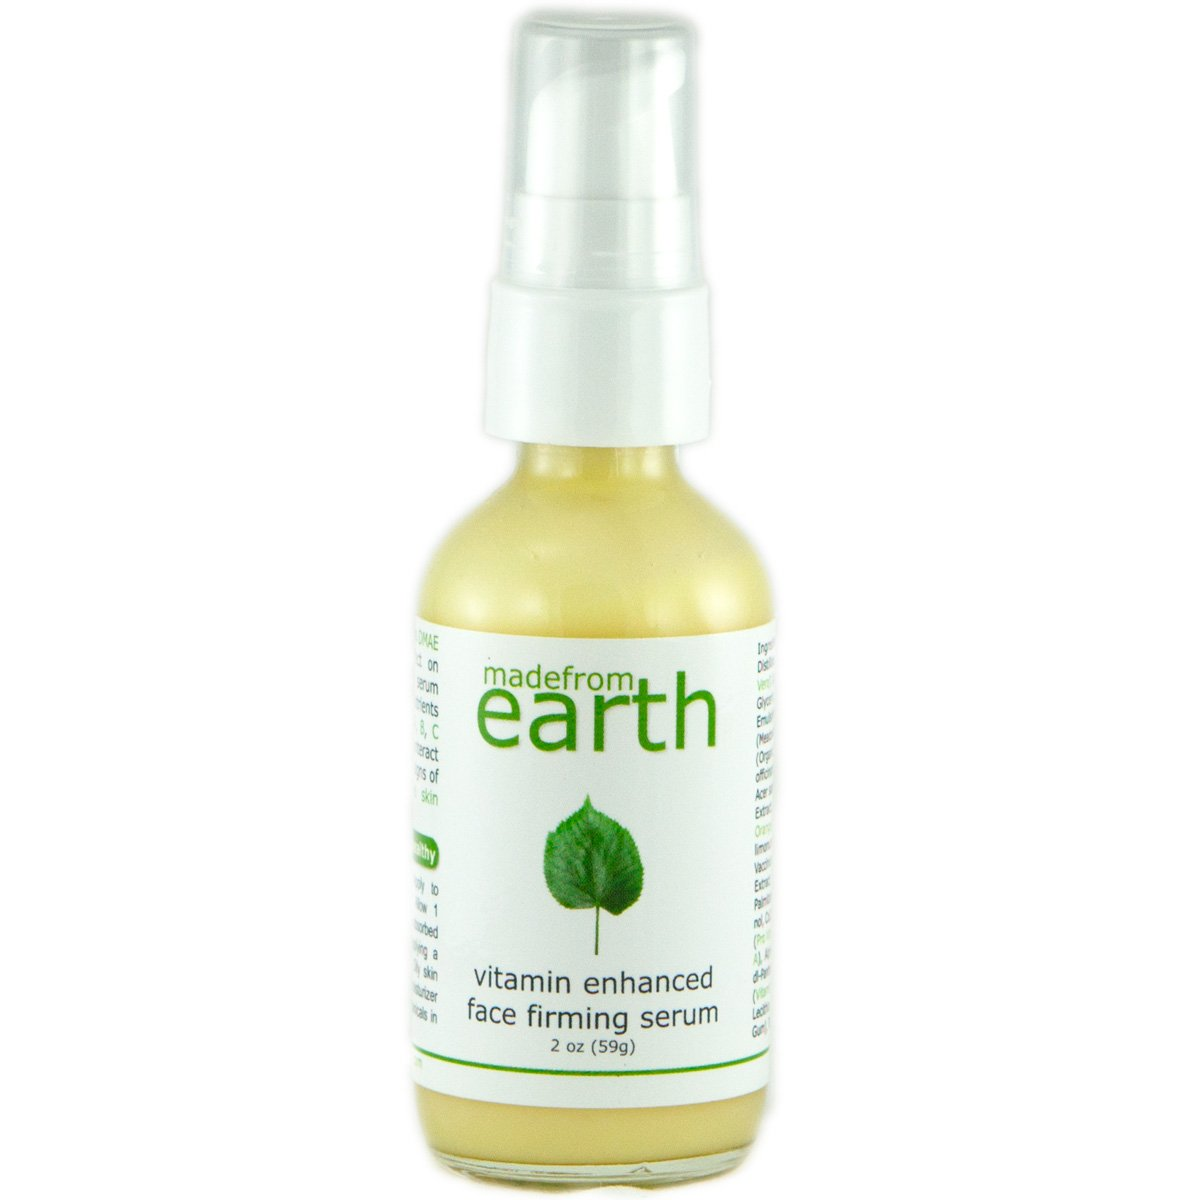 Vitamin Enhanced Face Firming Serum with organic nutrients of CoQ10, DMAE, and Vitamins A, B, C and E.